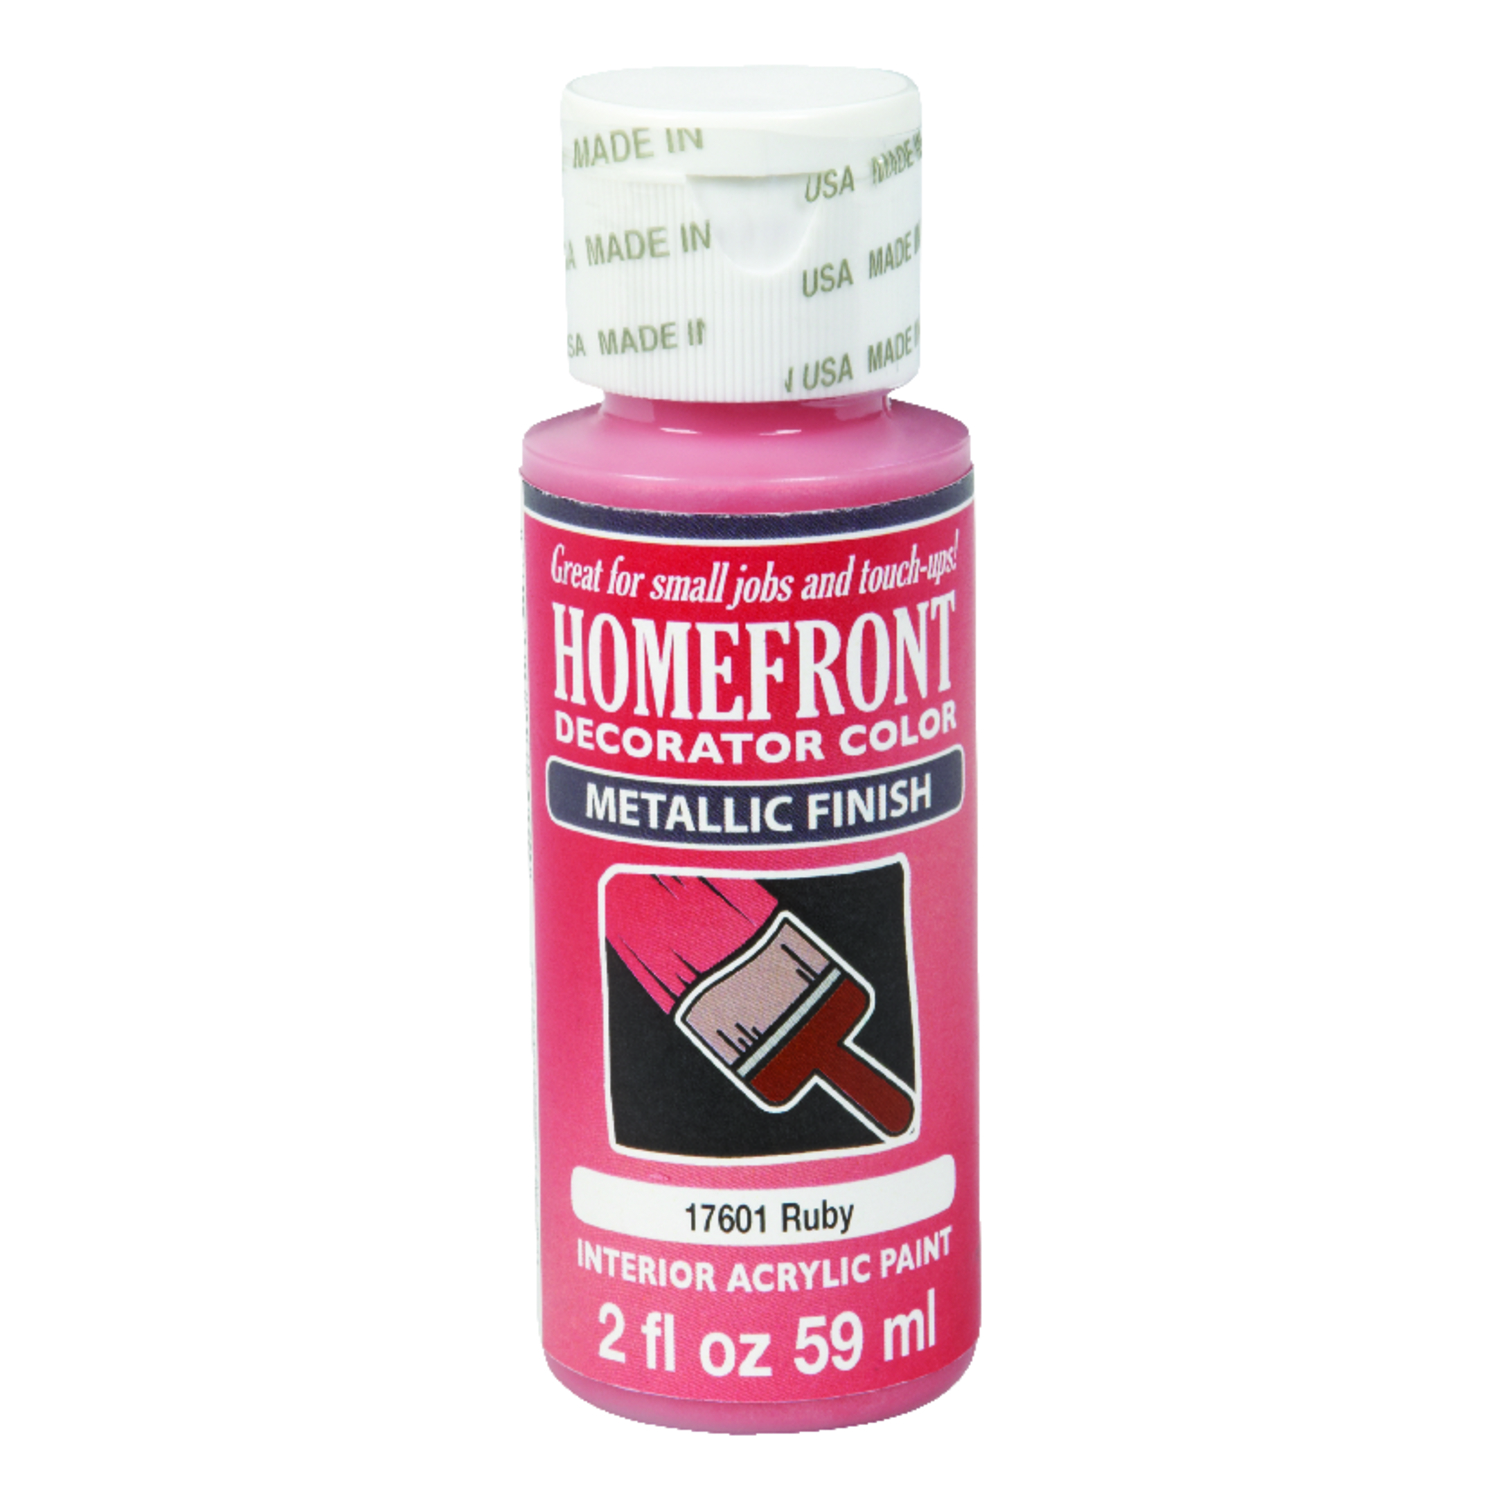 Homefront  Decorator Color  Metallic  Acrylic Latex  Hobby Paint  Ruby  2 oz.